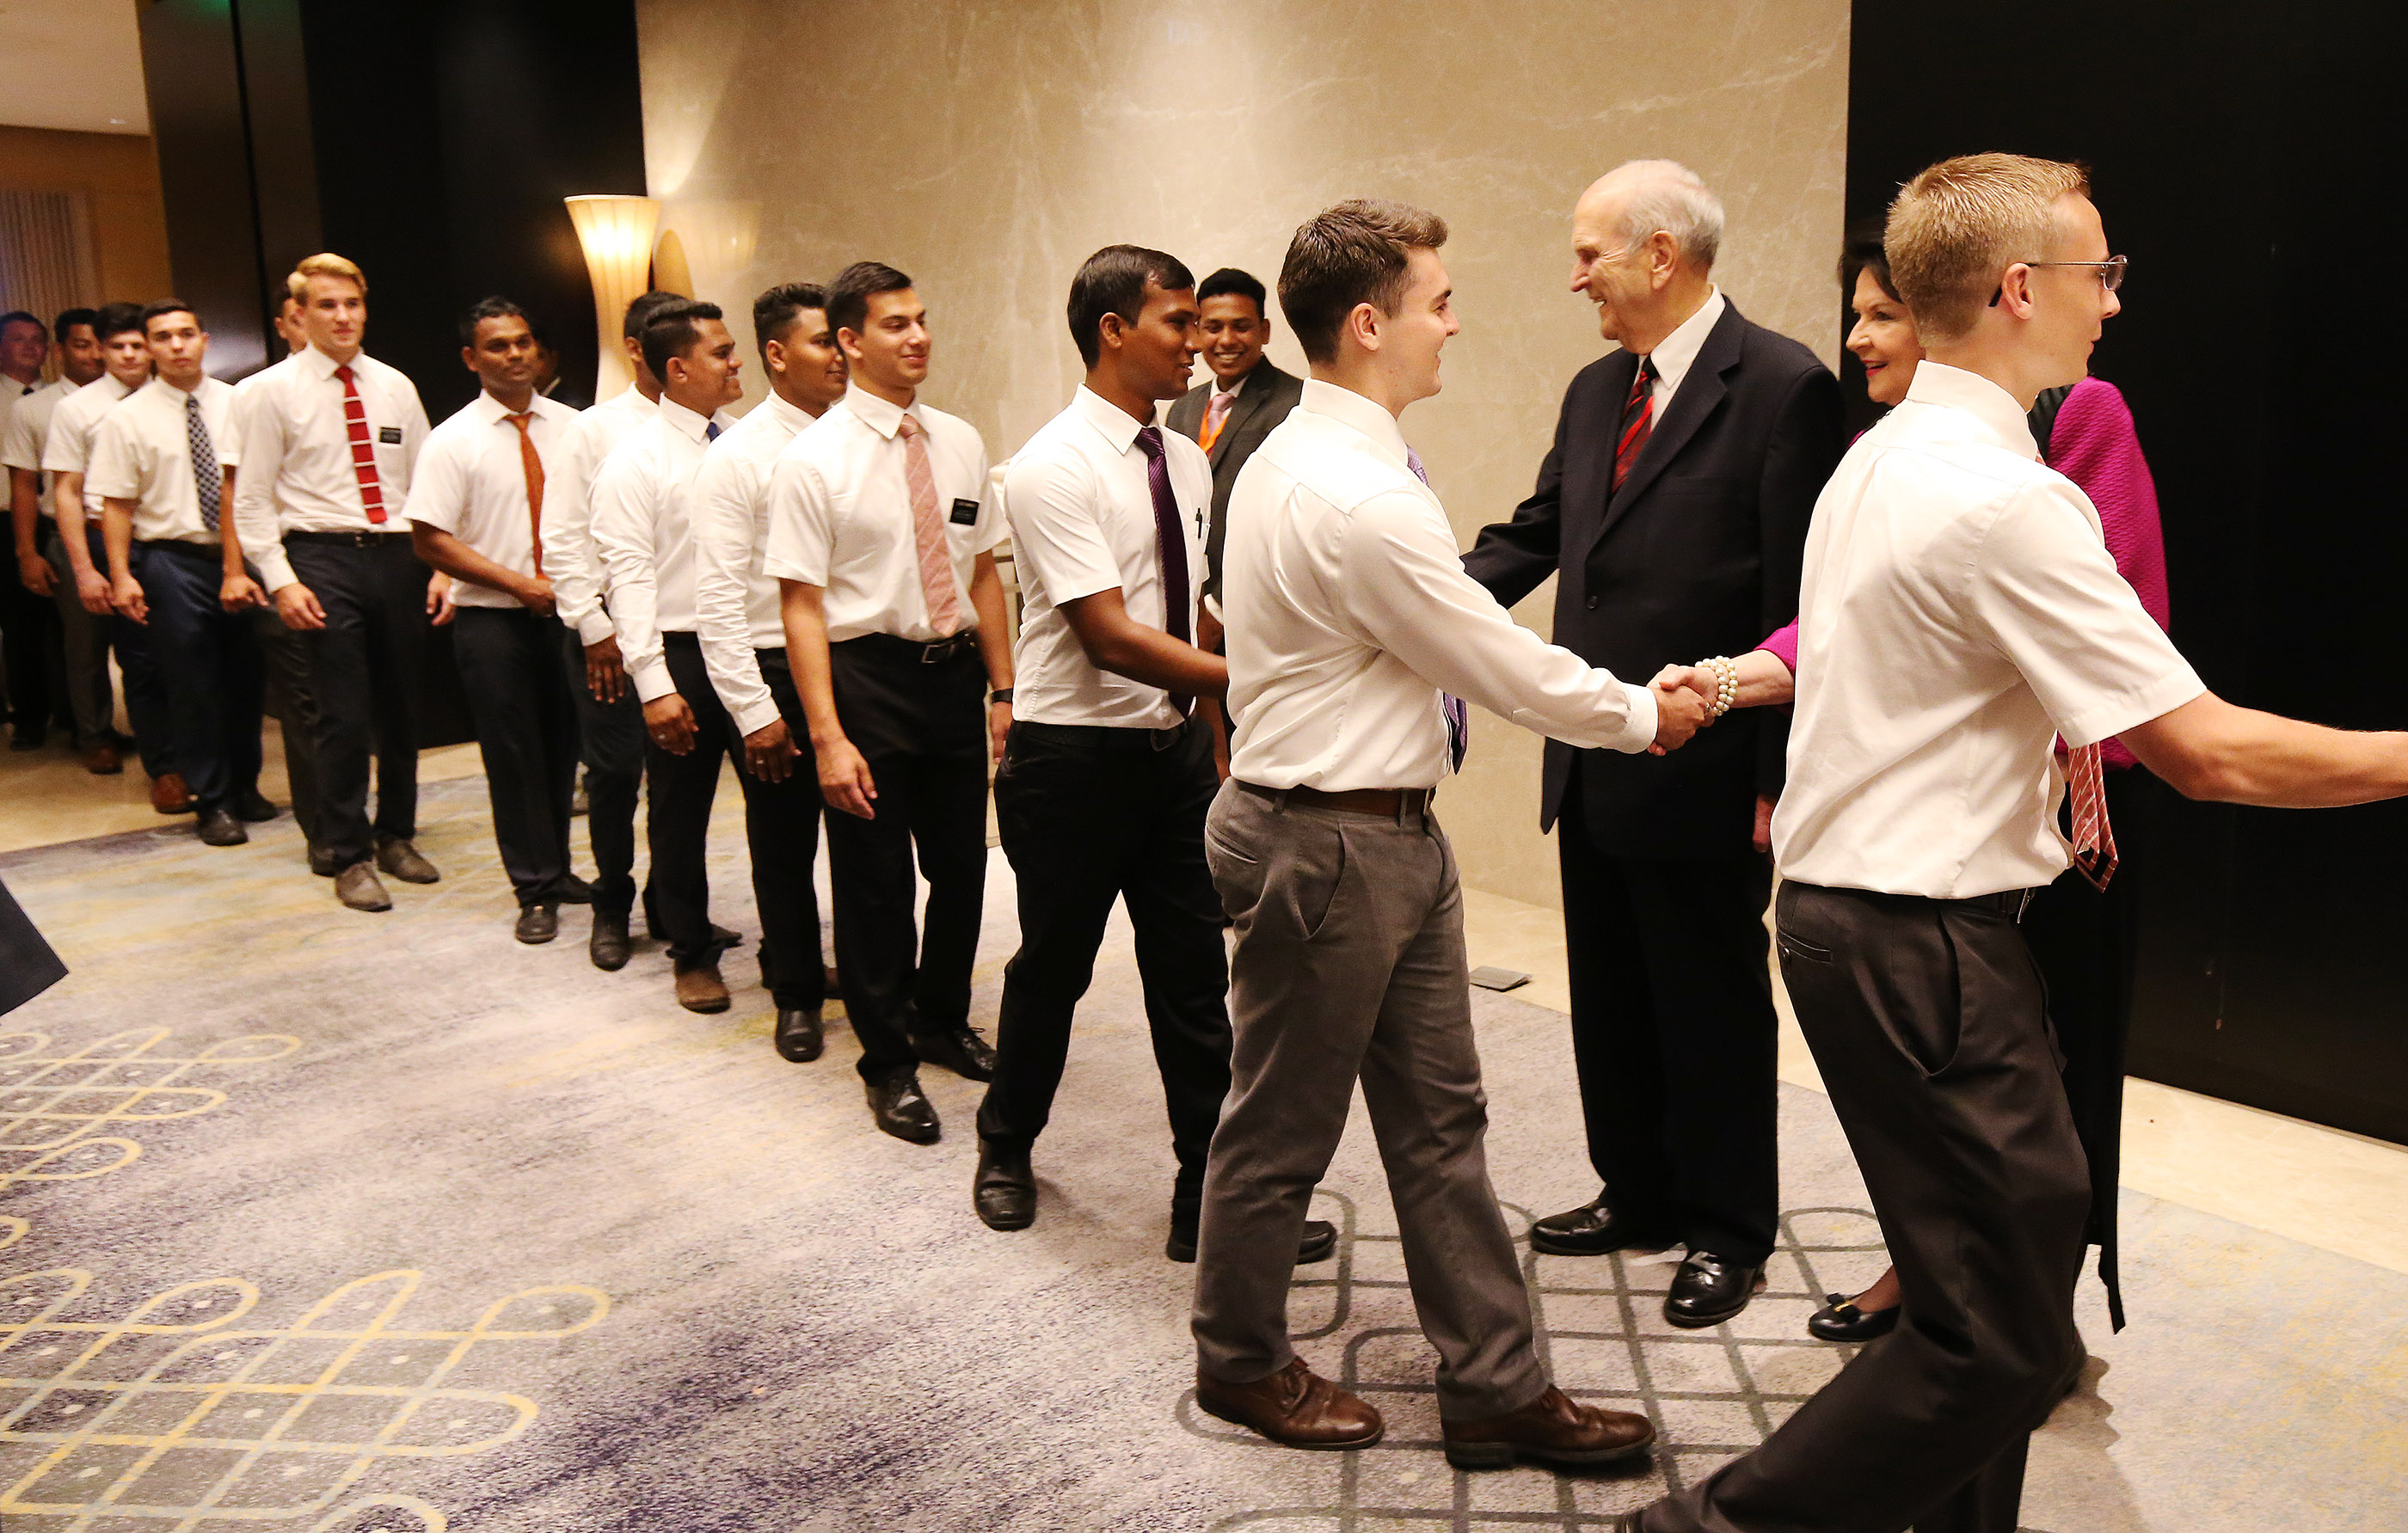 President Russell M. Nelson greets missionaries prior to a conference in Bengaluru, India, on Thursday, April 19, 2018.